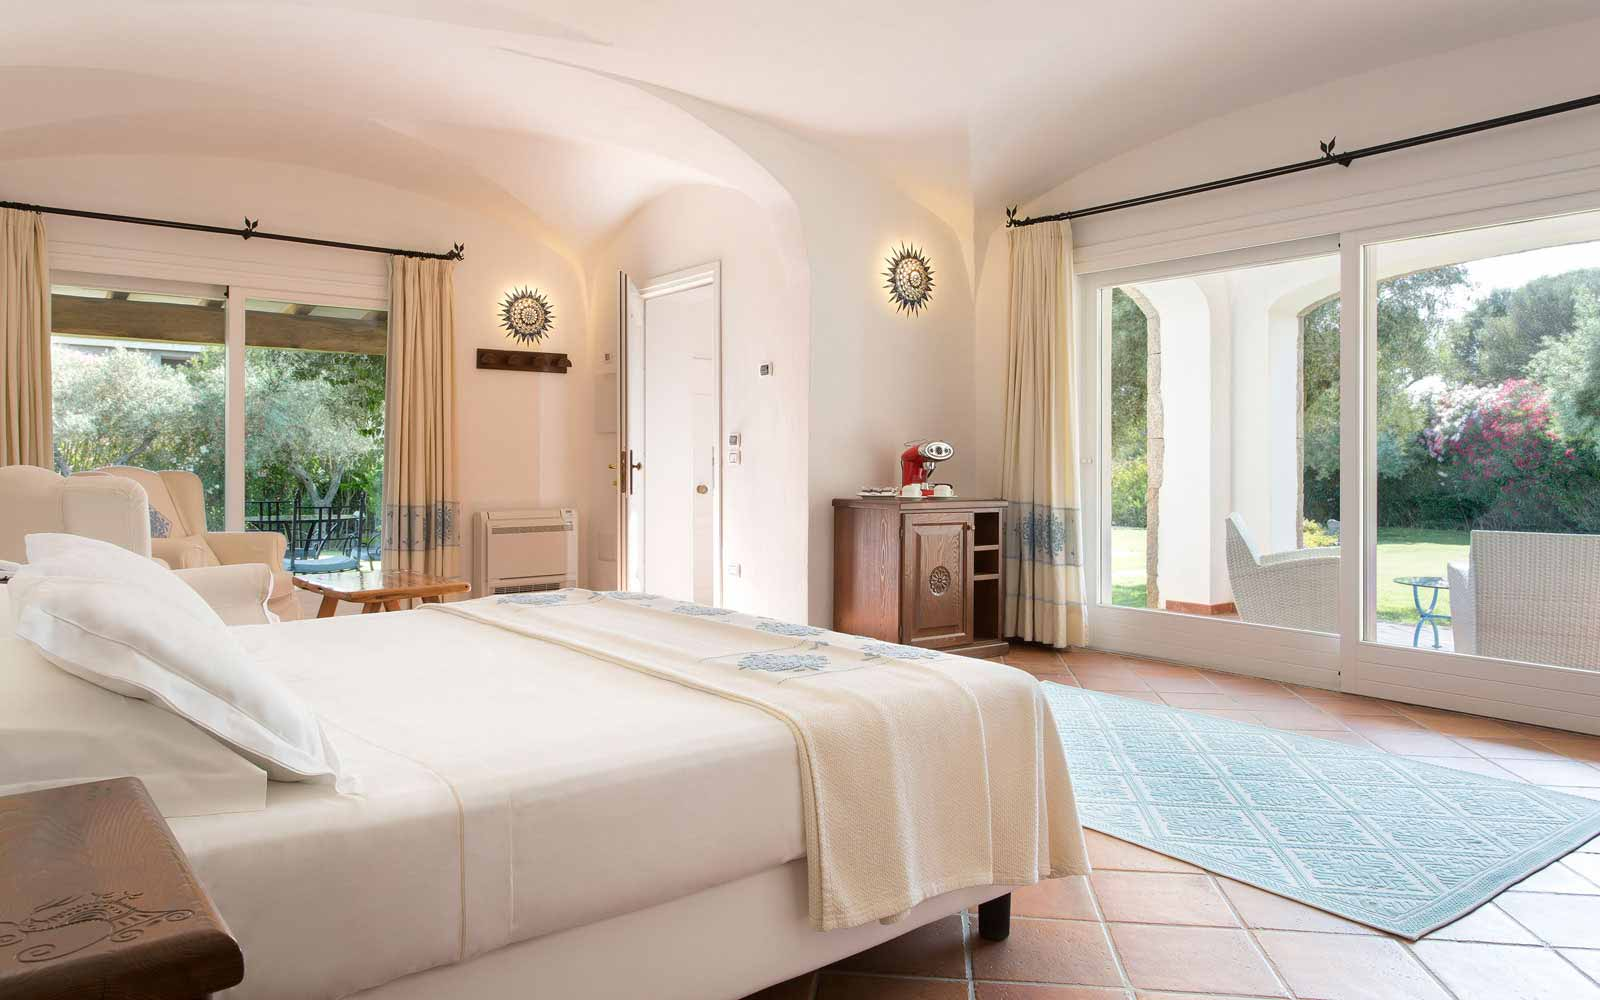 Junior Suite Deluxe at Hotel La Rocca Resort & Spa